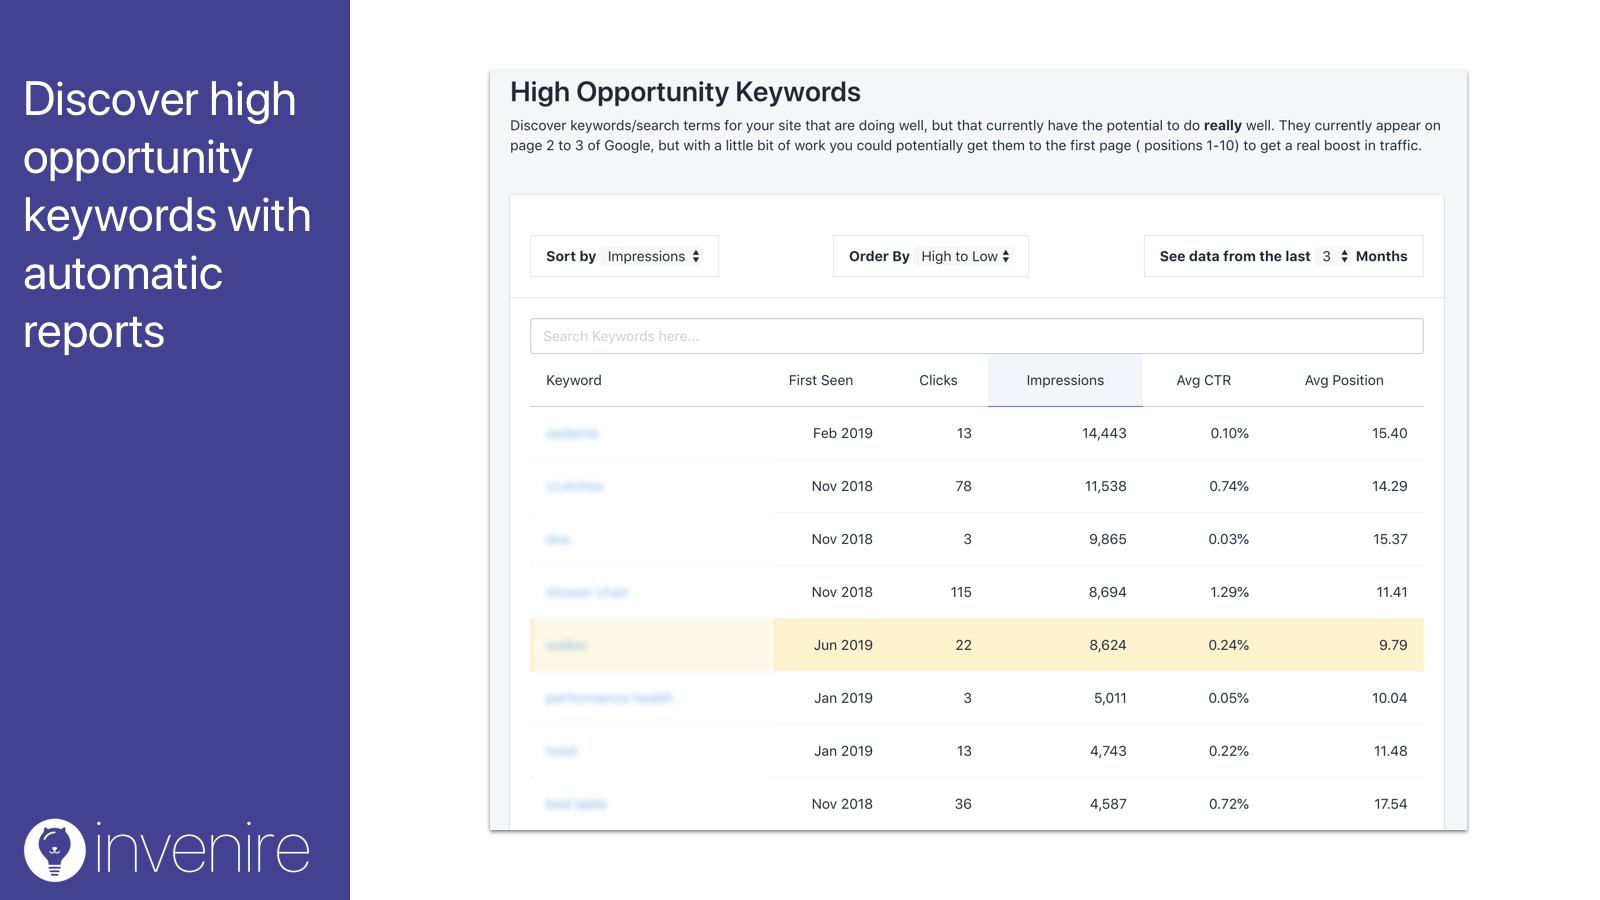 Discover high opportunity keywords